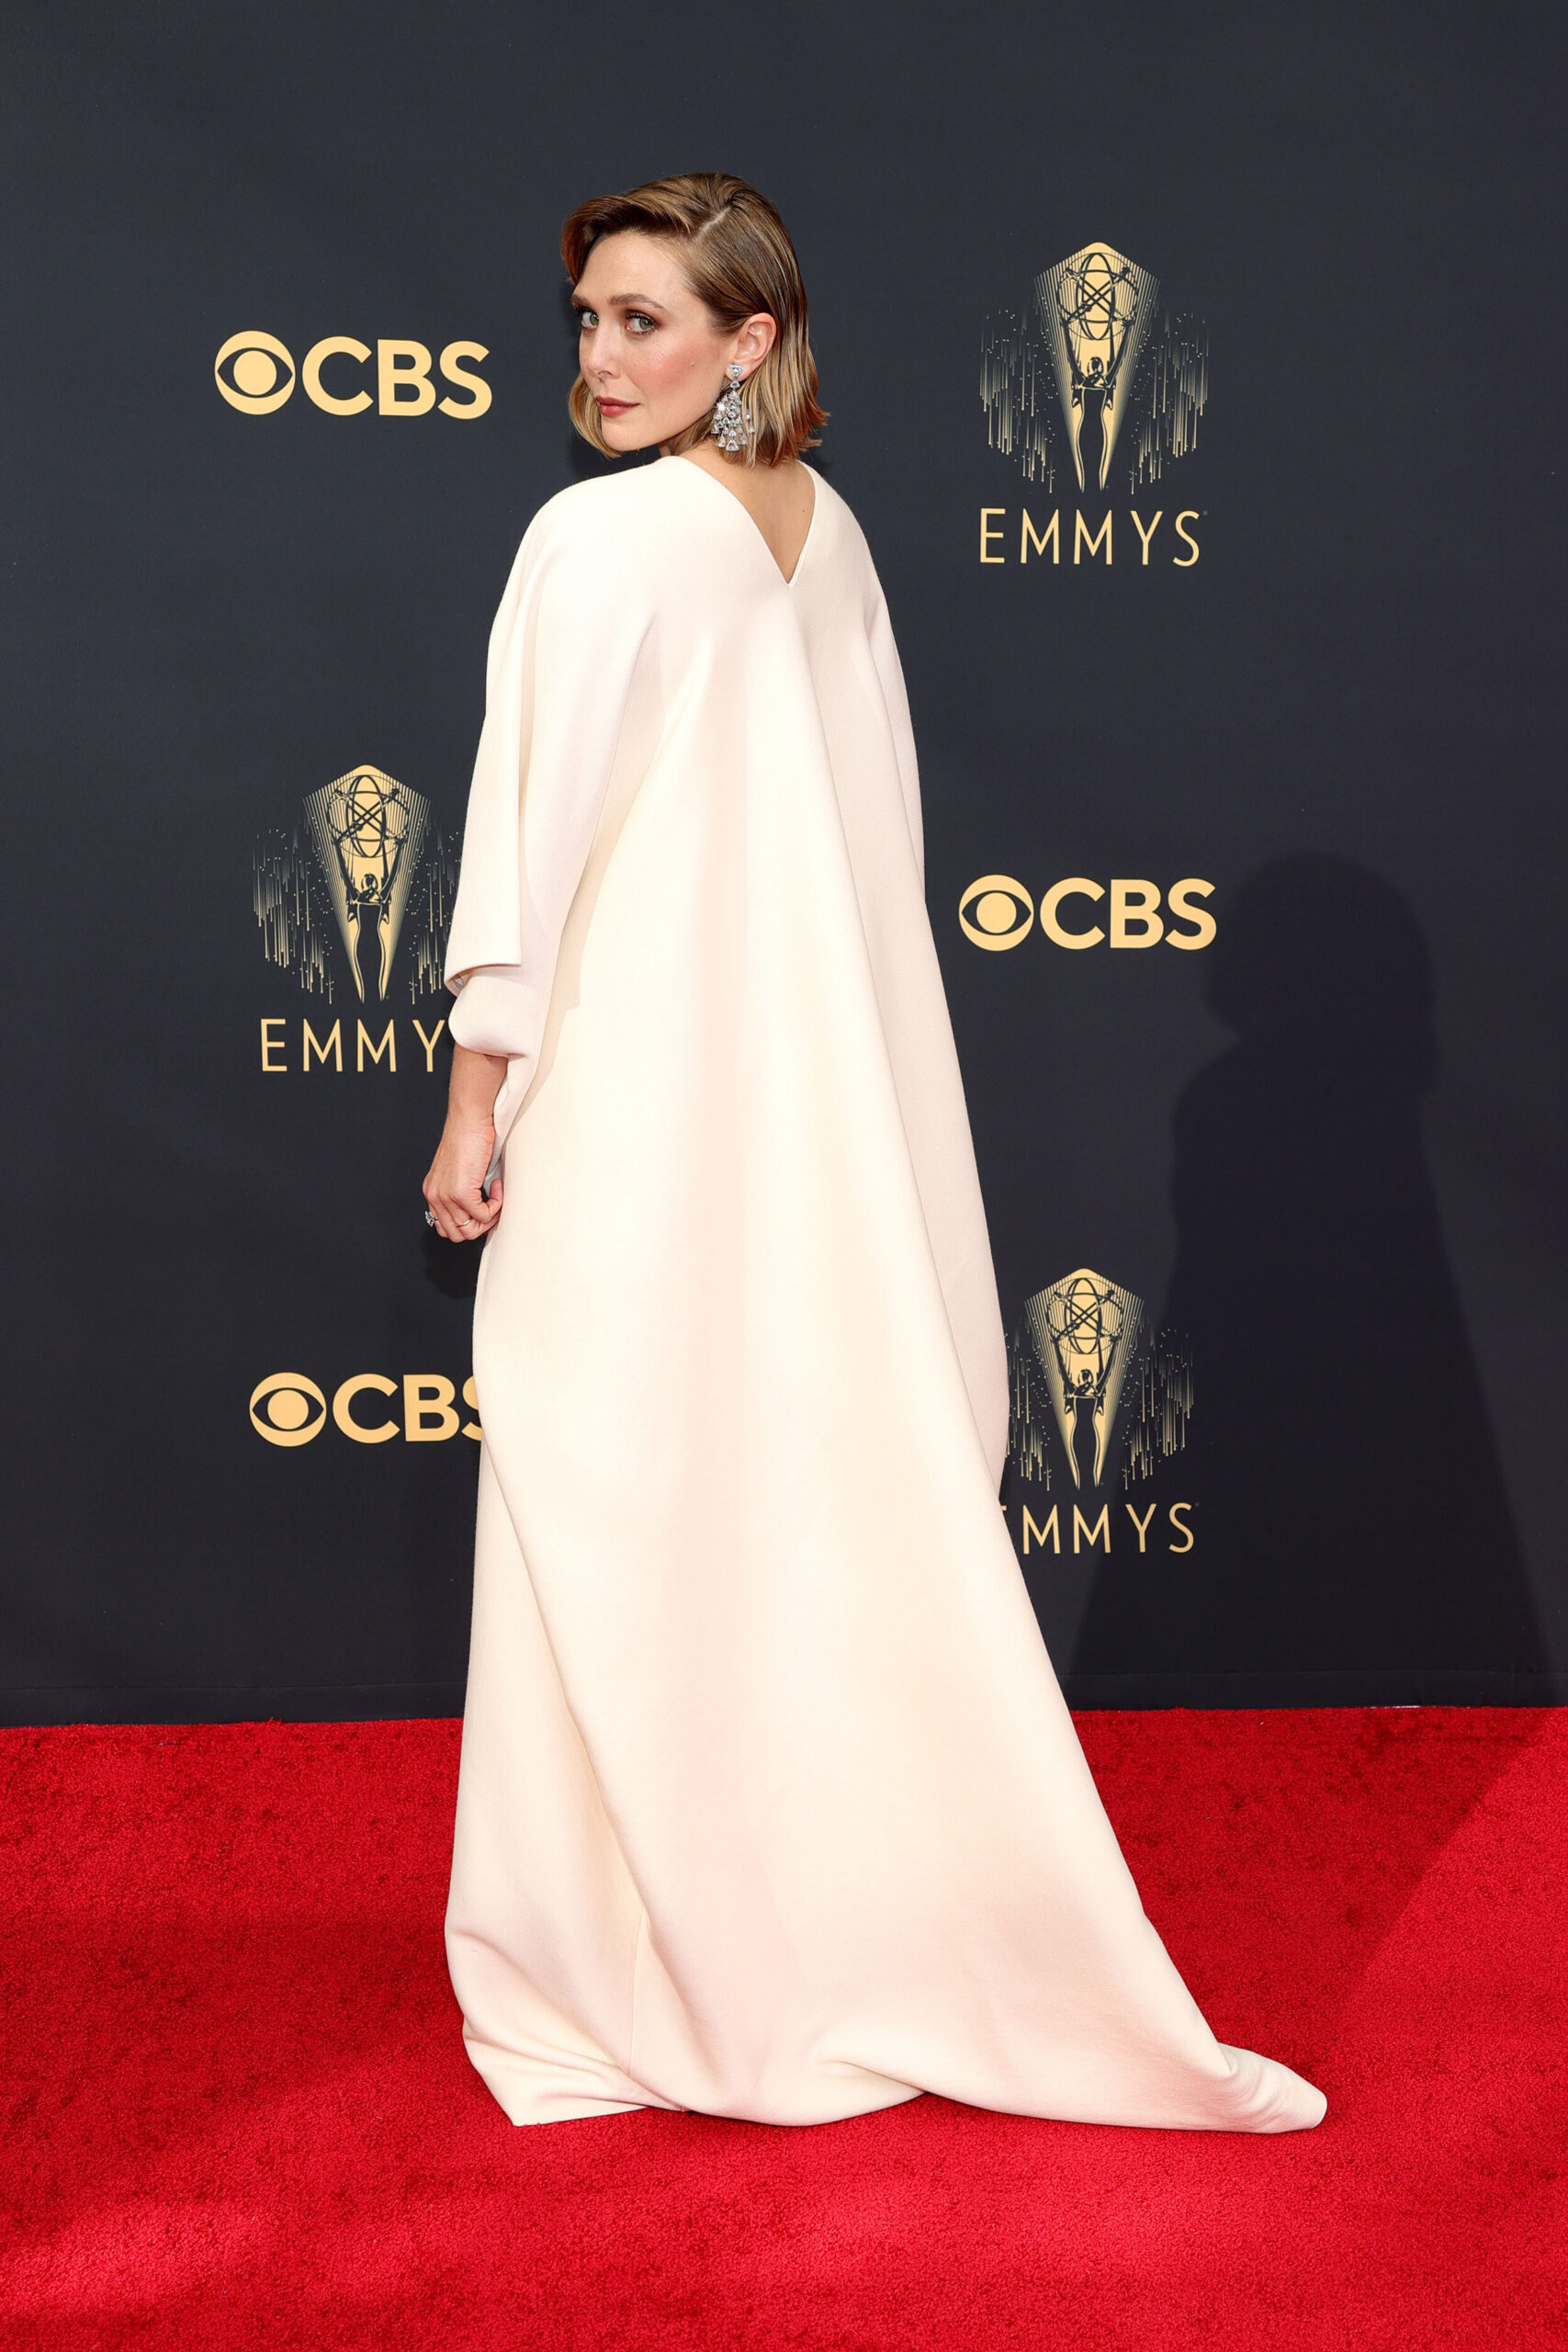 <i>Rich Fury/Getty Images</i><br/>Elizabeth Olsen wore a gown designed by her sisters to Sunday's Emmy Awards.